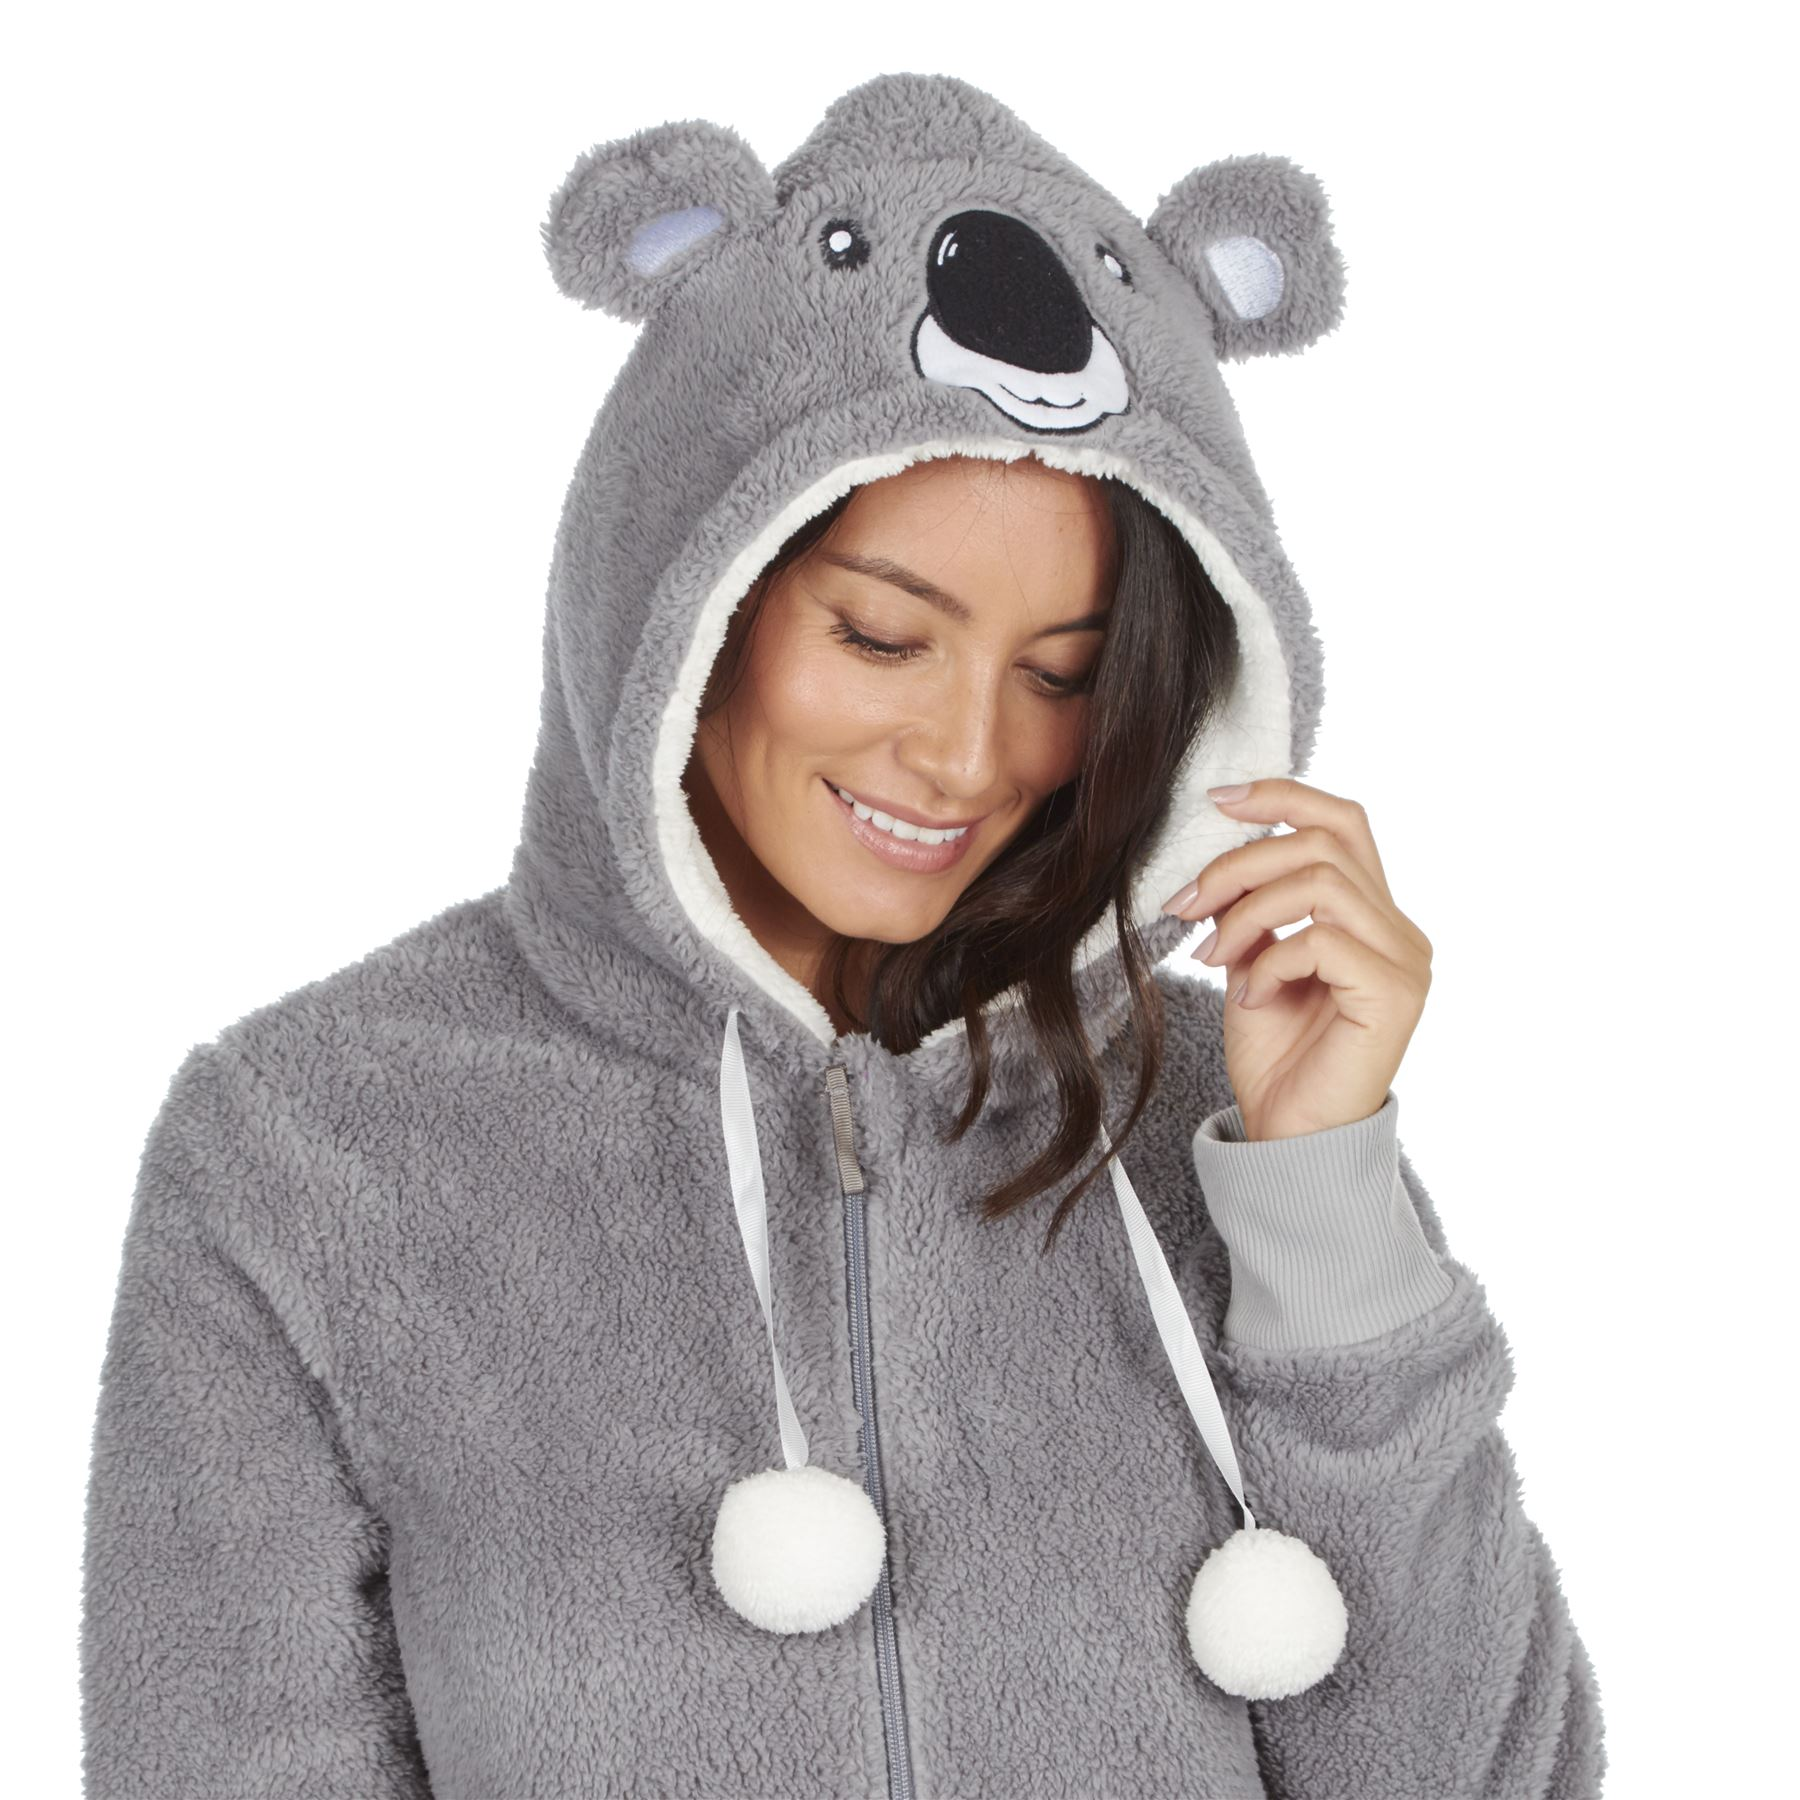 Ladies-Womens-Girls-Fleece-All-In-One-Pyjamas-Outfit-Jumpsuit-Costume-Size-6-18 thumbnail 6